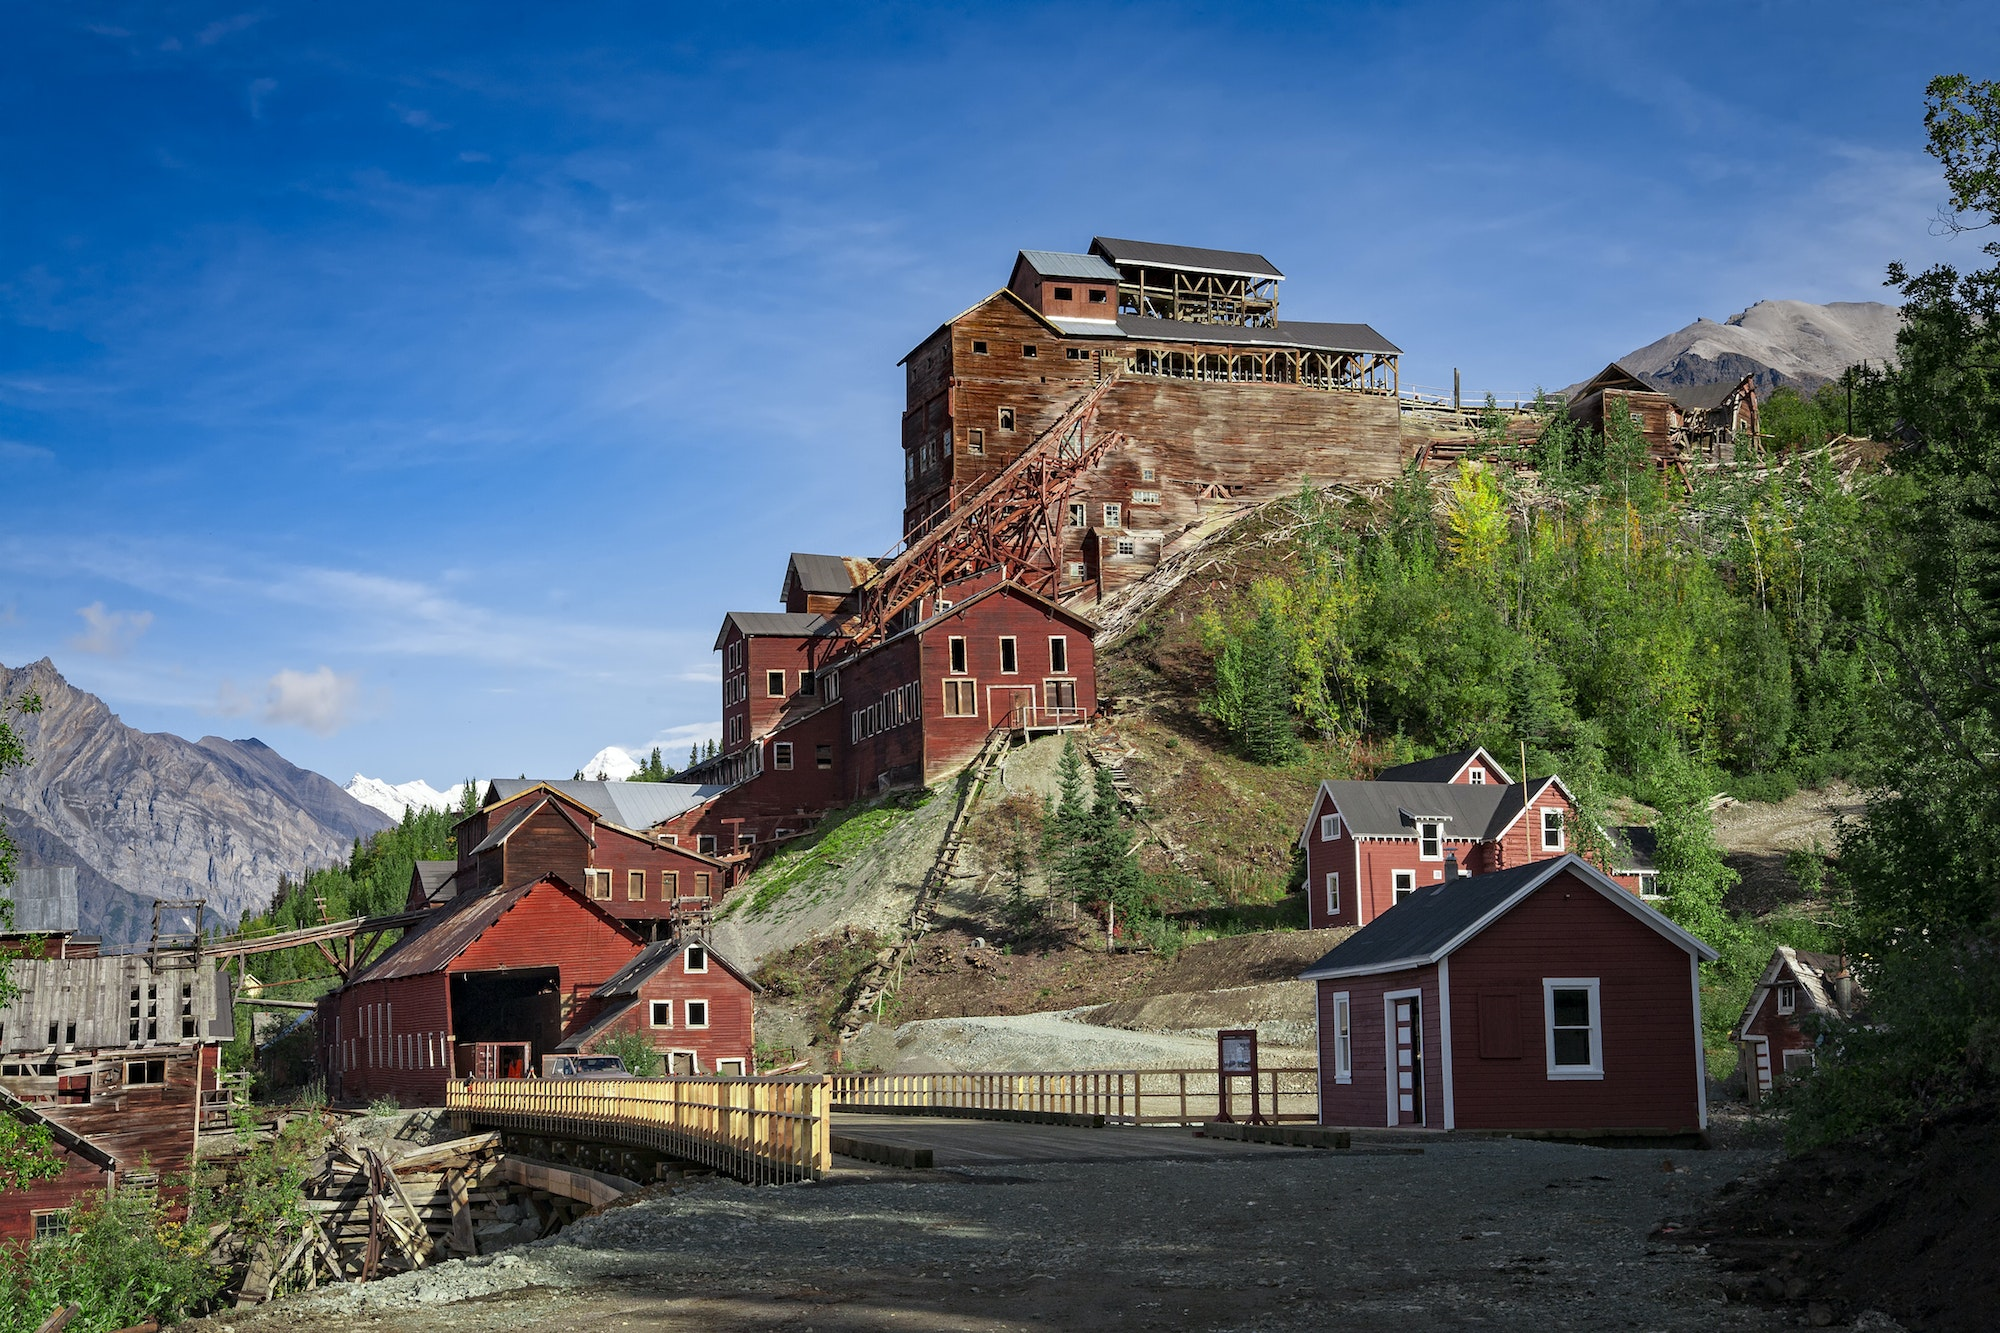 Kennecott is located in Alaska's Wrangell–St. Elias National Park, the largest U.S. national park.